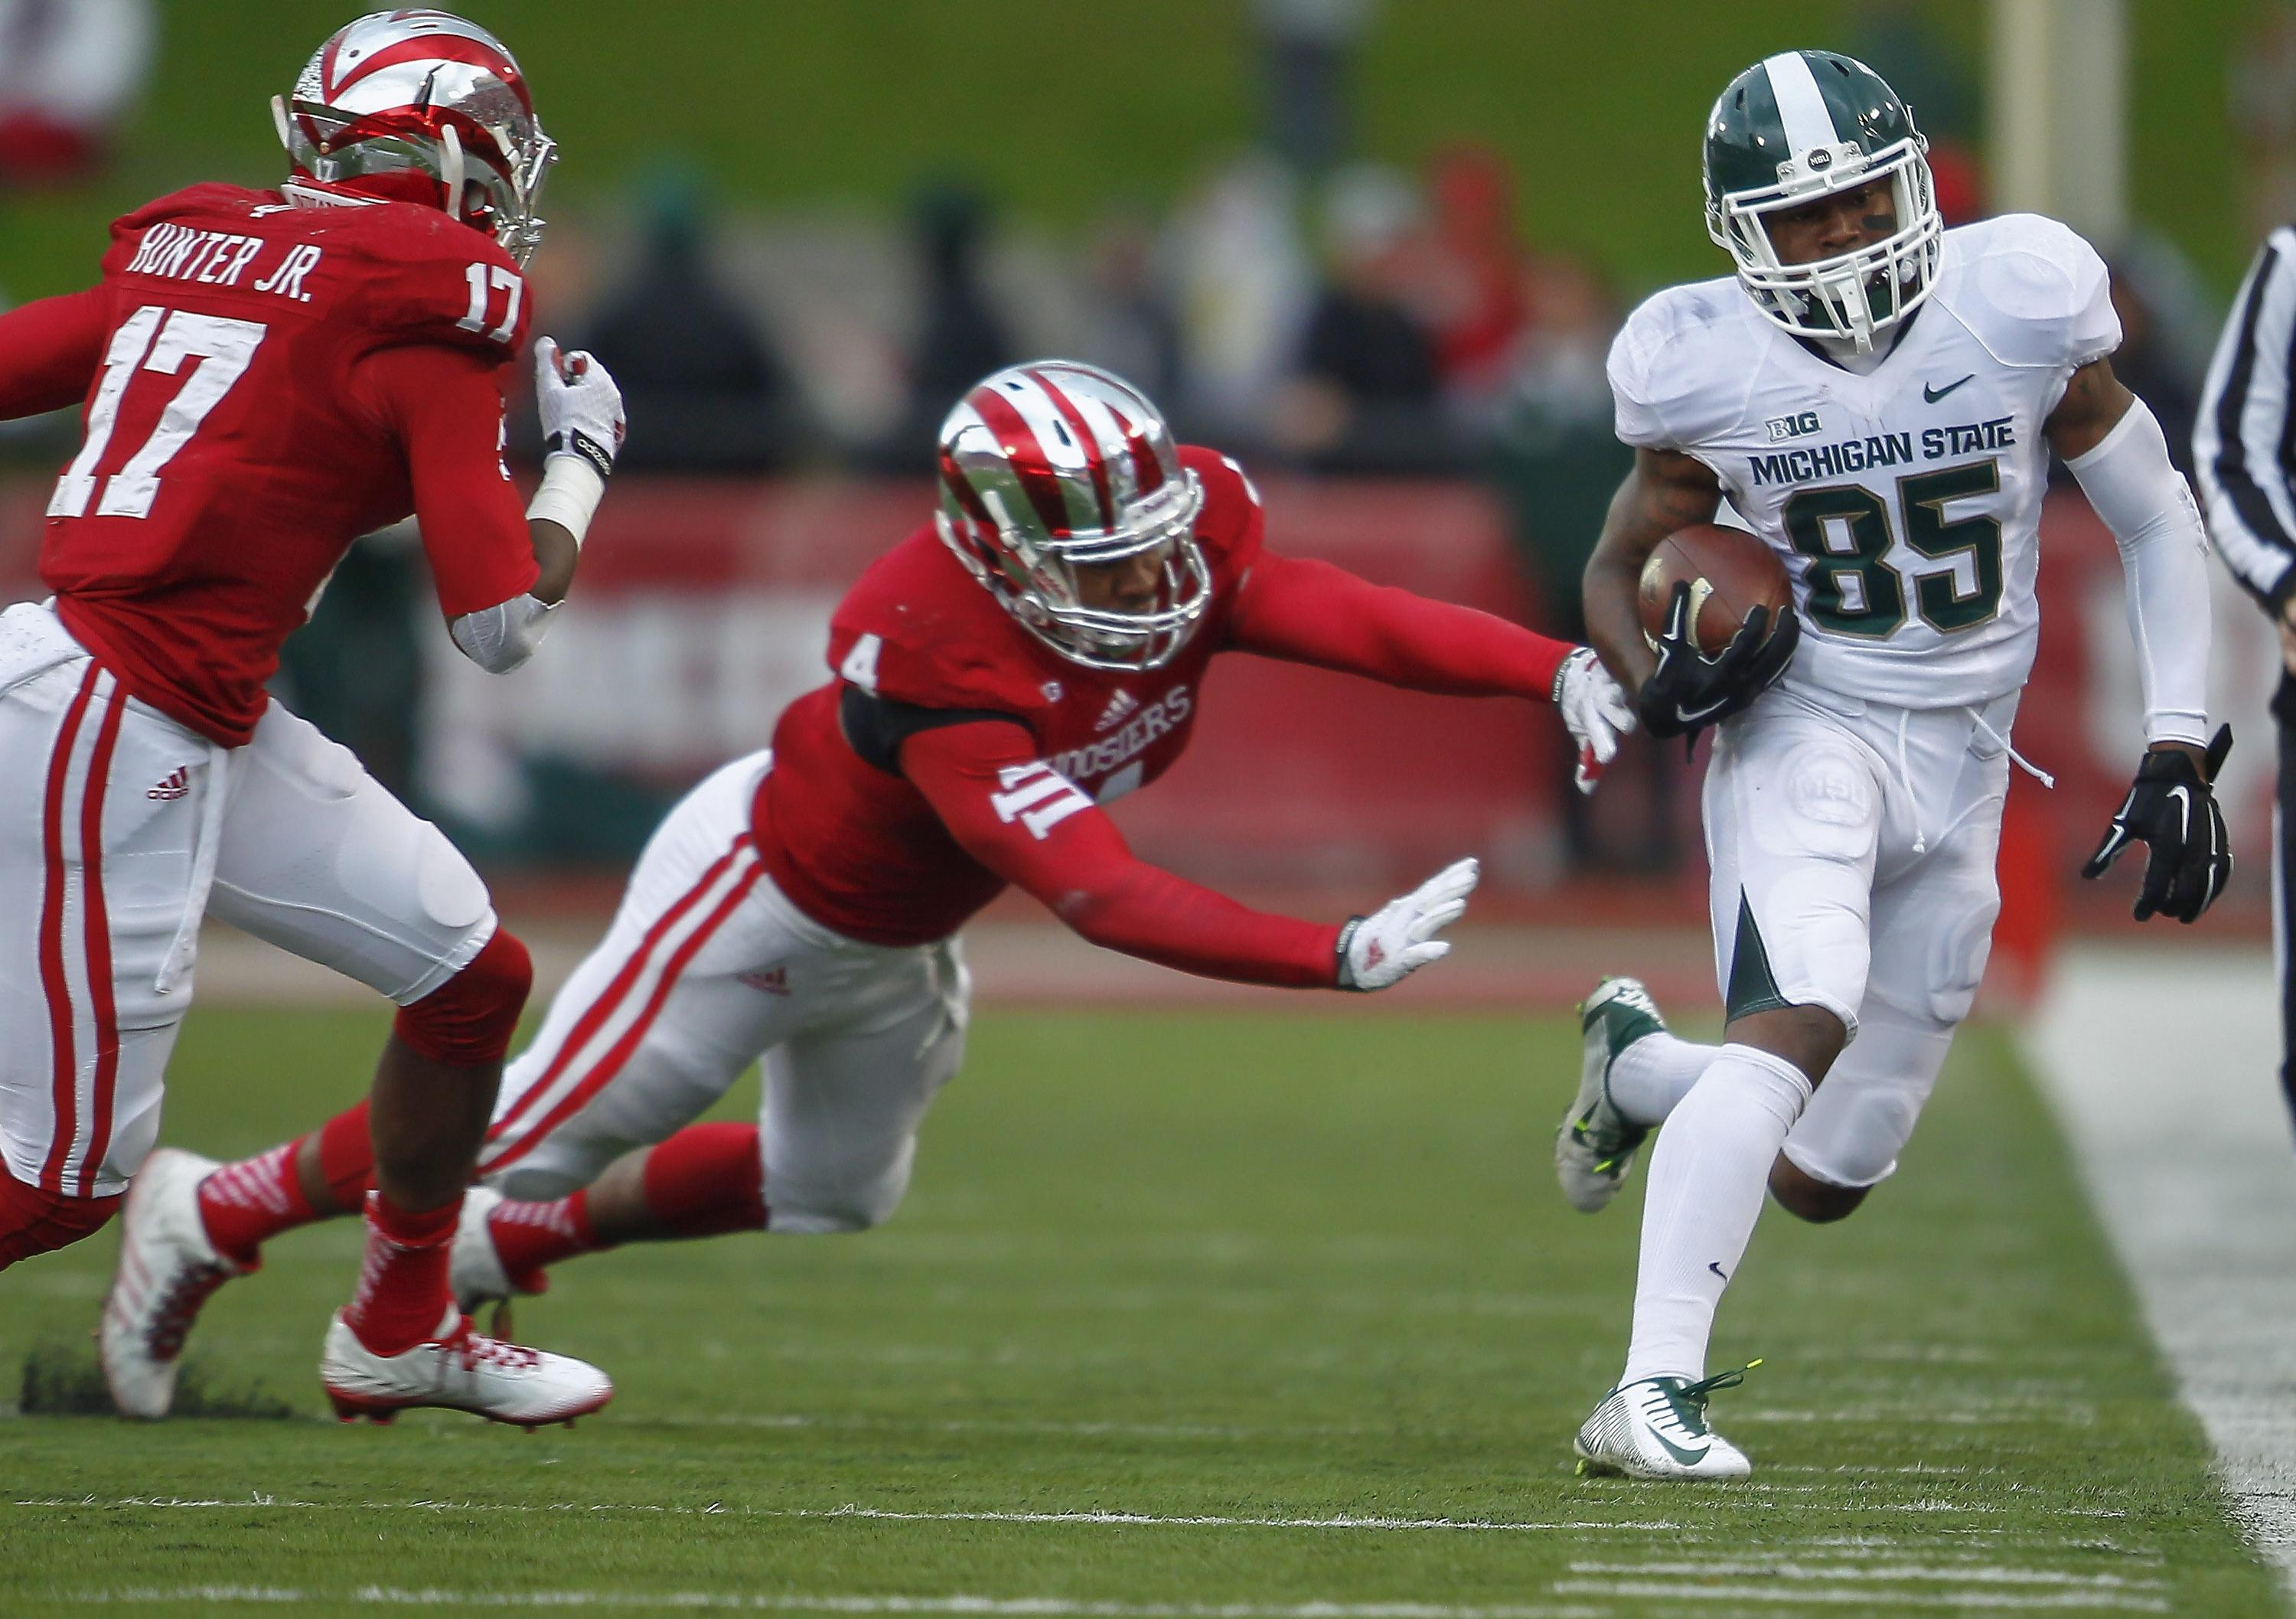 Report: Michigan State's Macgarrett Kings Jr. charged with 2 misdemeanors